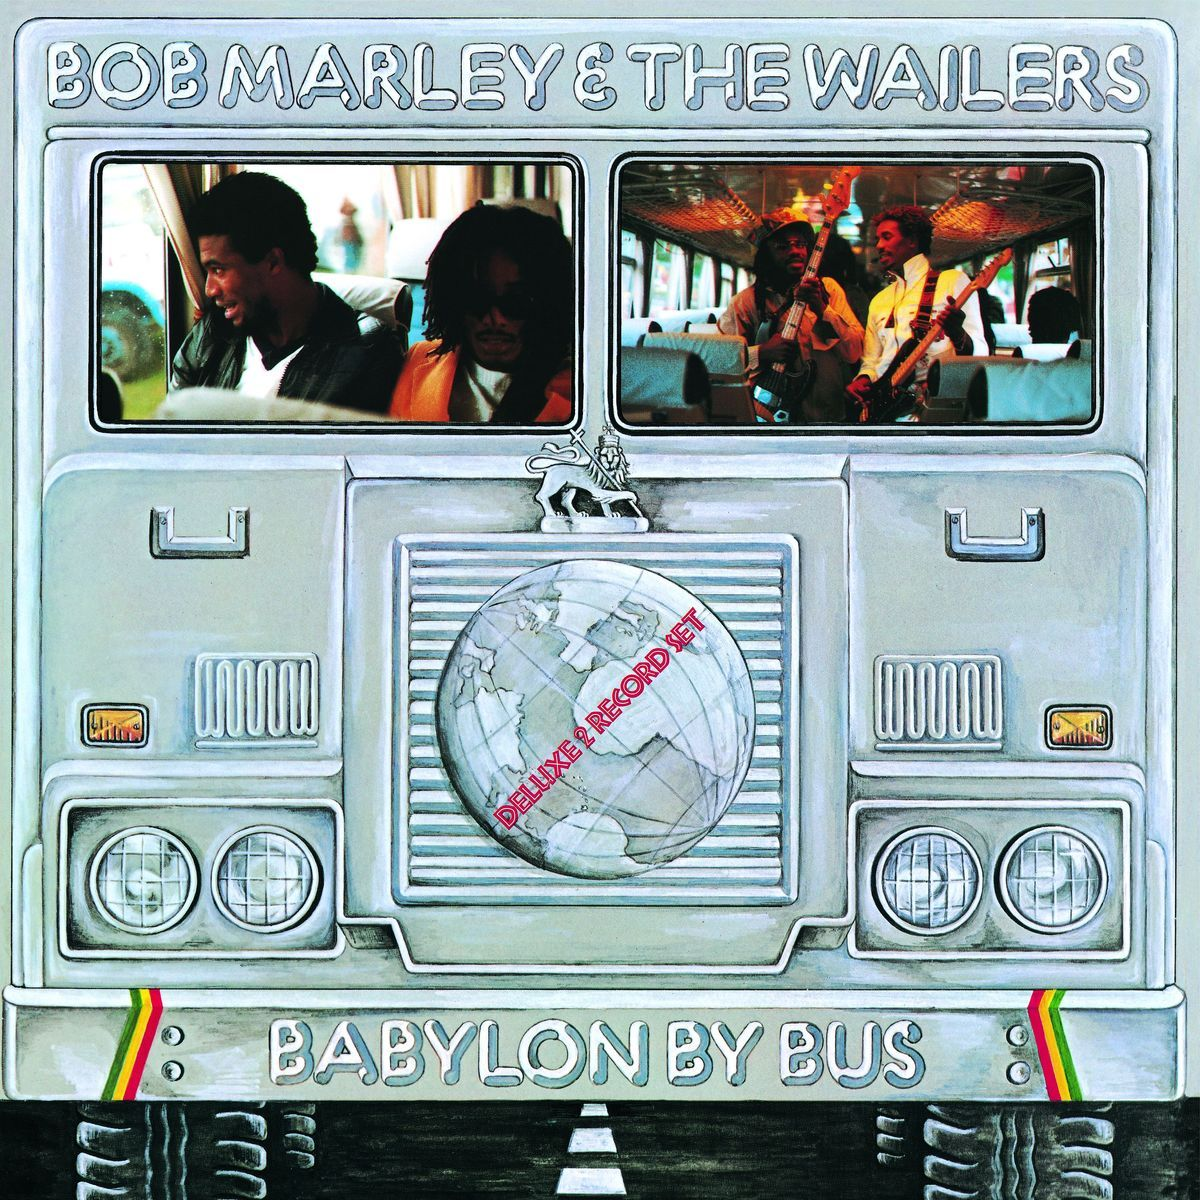 Bob Marley & The Wailers - Babylon By Bus (Half Speed Mastering)